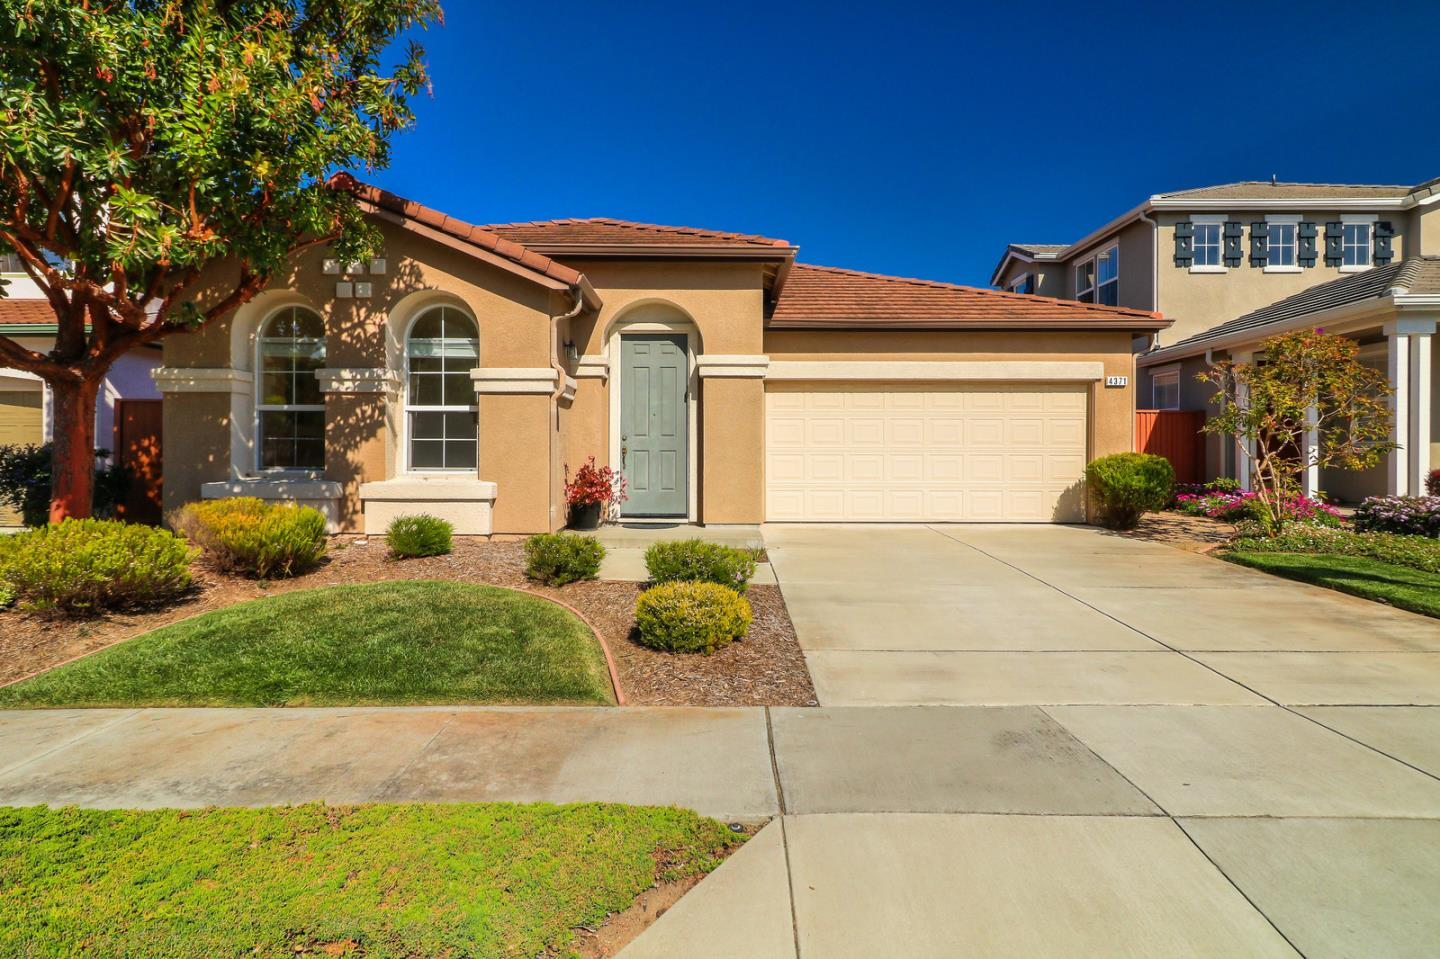 Photo of 4371 Shoreline CT, SEASIDE, CA 93955